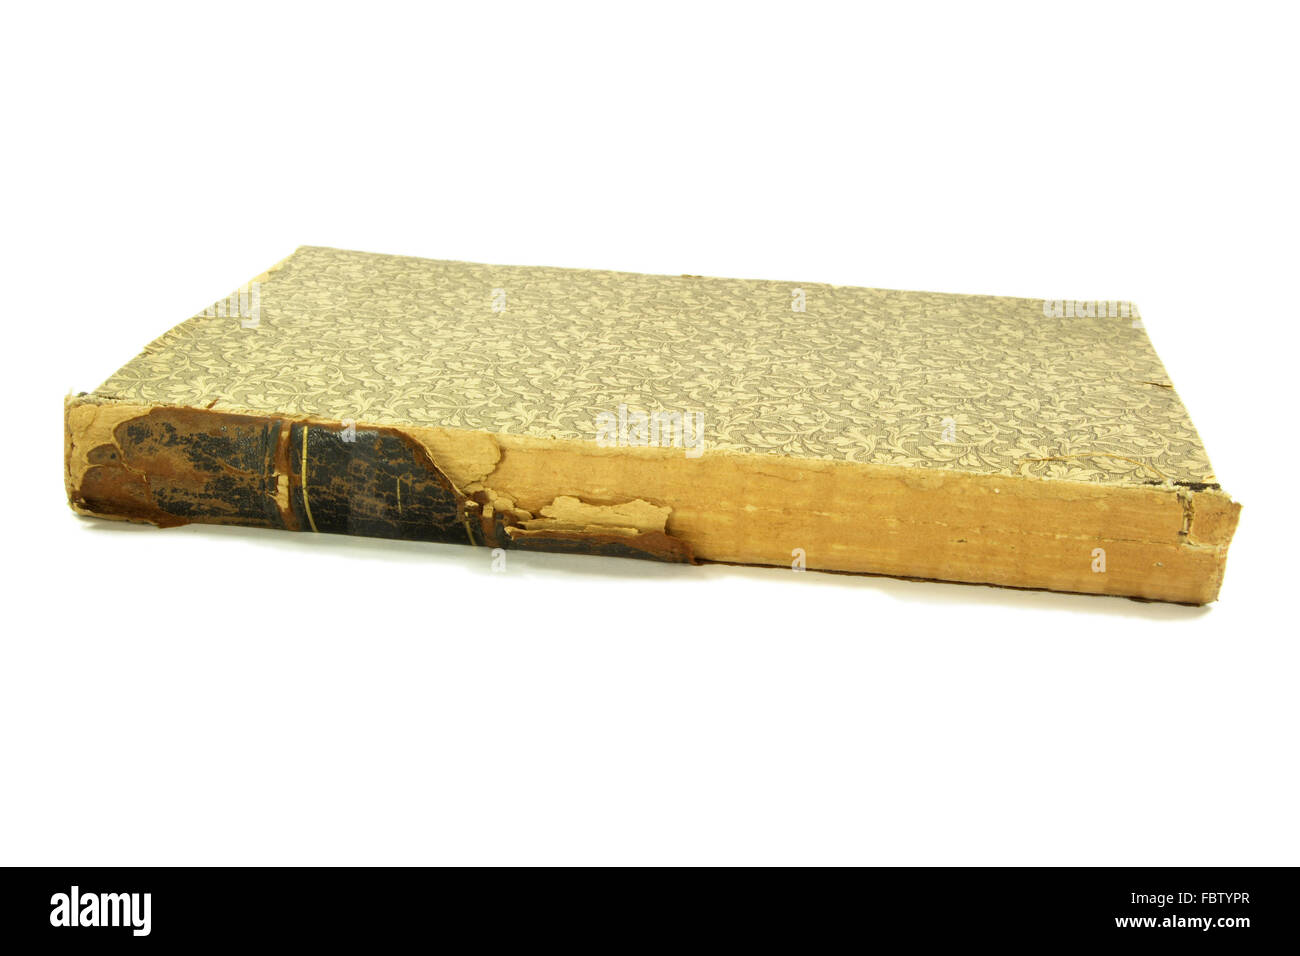 120 years Old book. - Stock Image